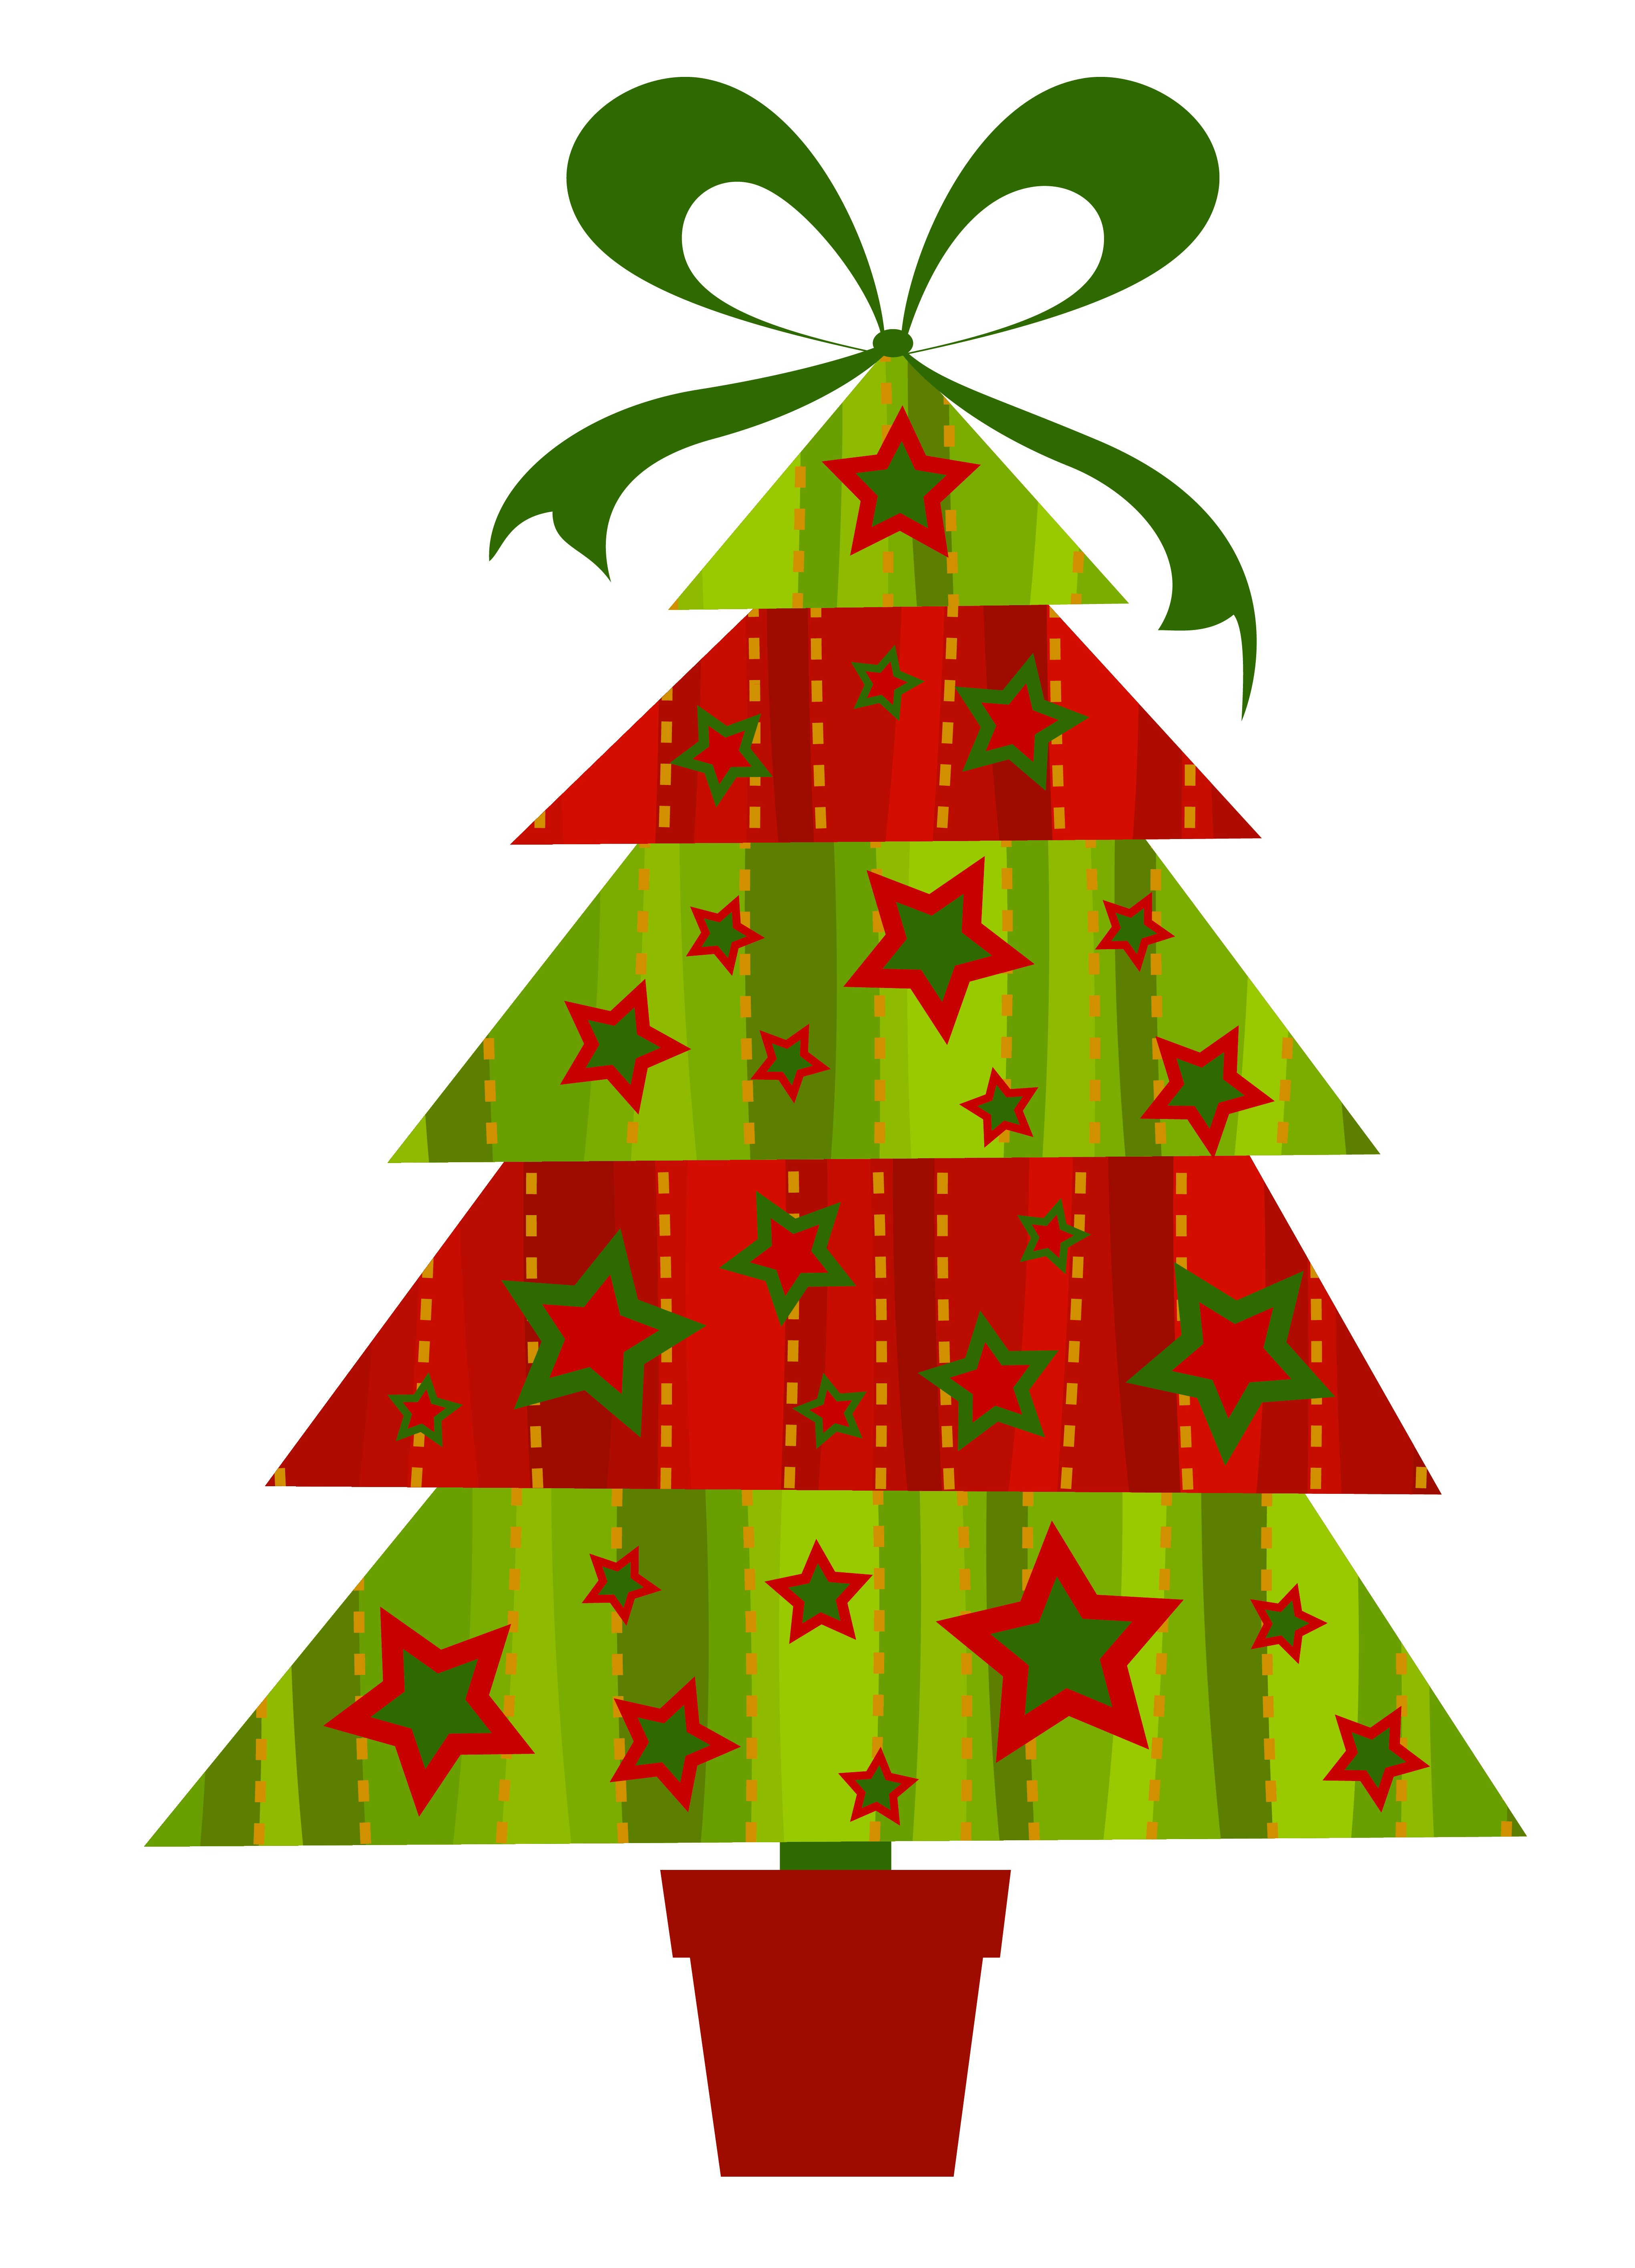 Car with christmas tree on top clipart picture freeuse library Christmas Village Clipart at GetDrawings.com   Free for personal use ... picture freeuse library